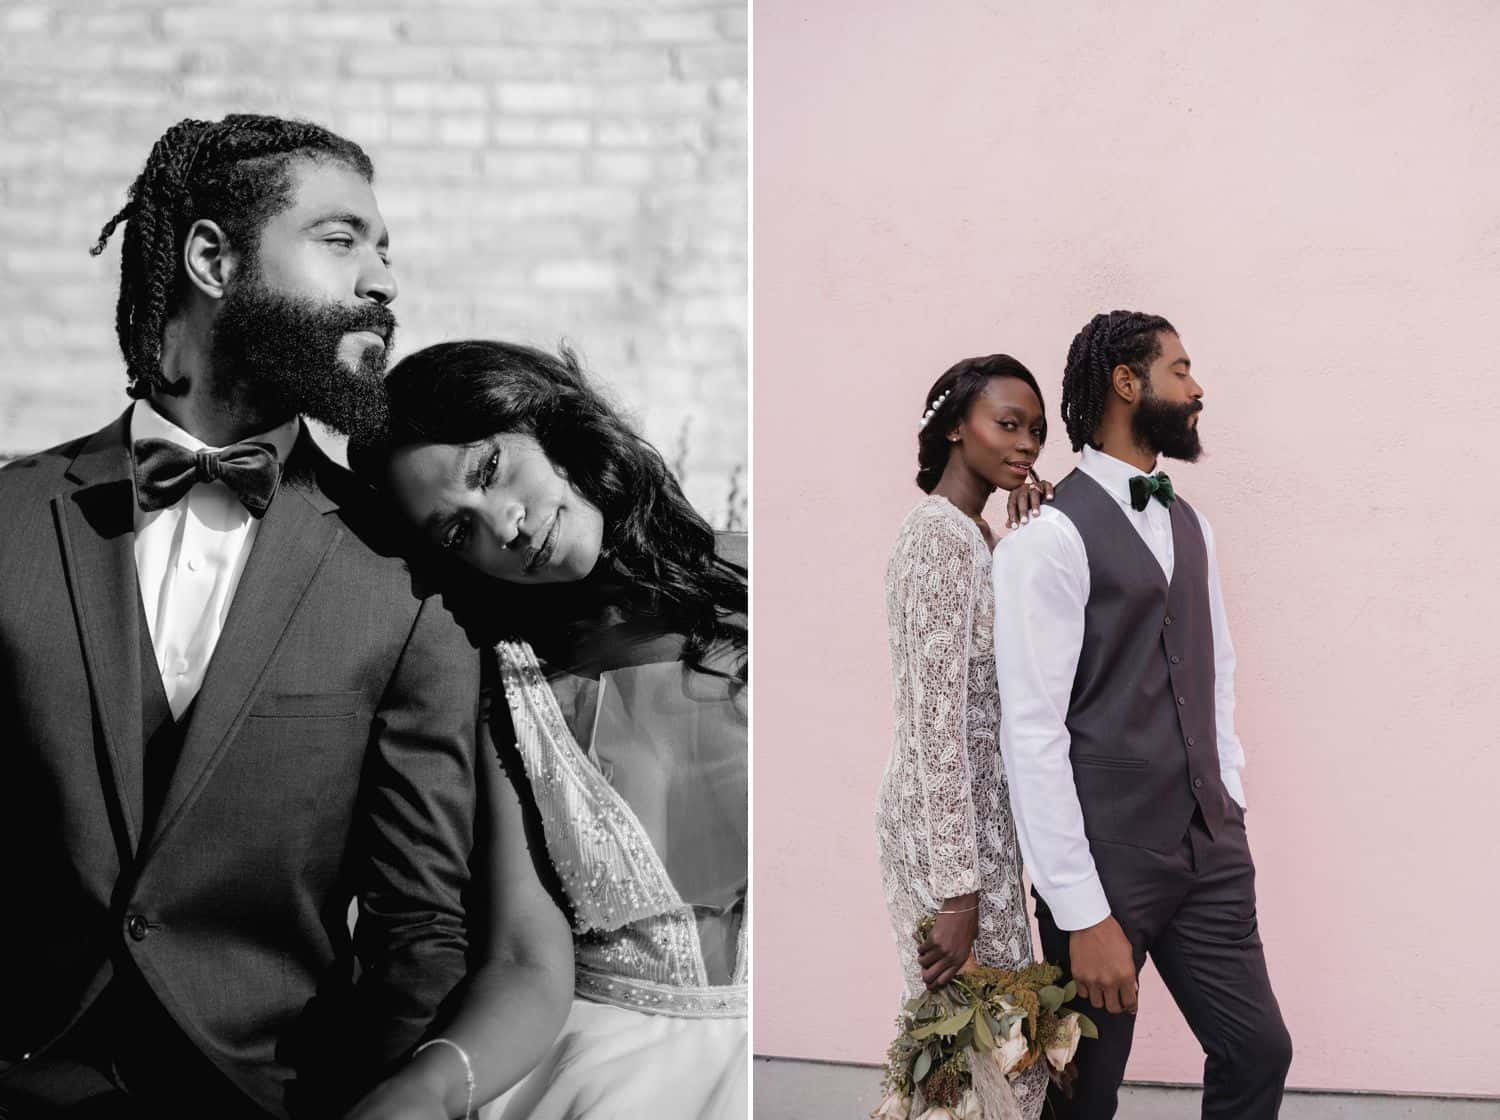 A Black bride and groom pose together in front of a brick wall for a black and white portrait, then again before a pink wall for a color photo.